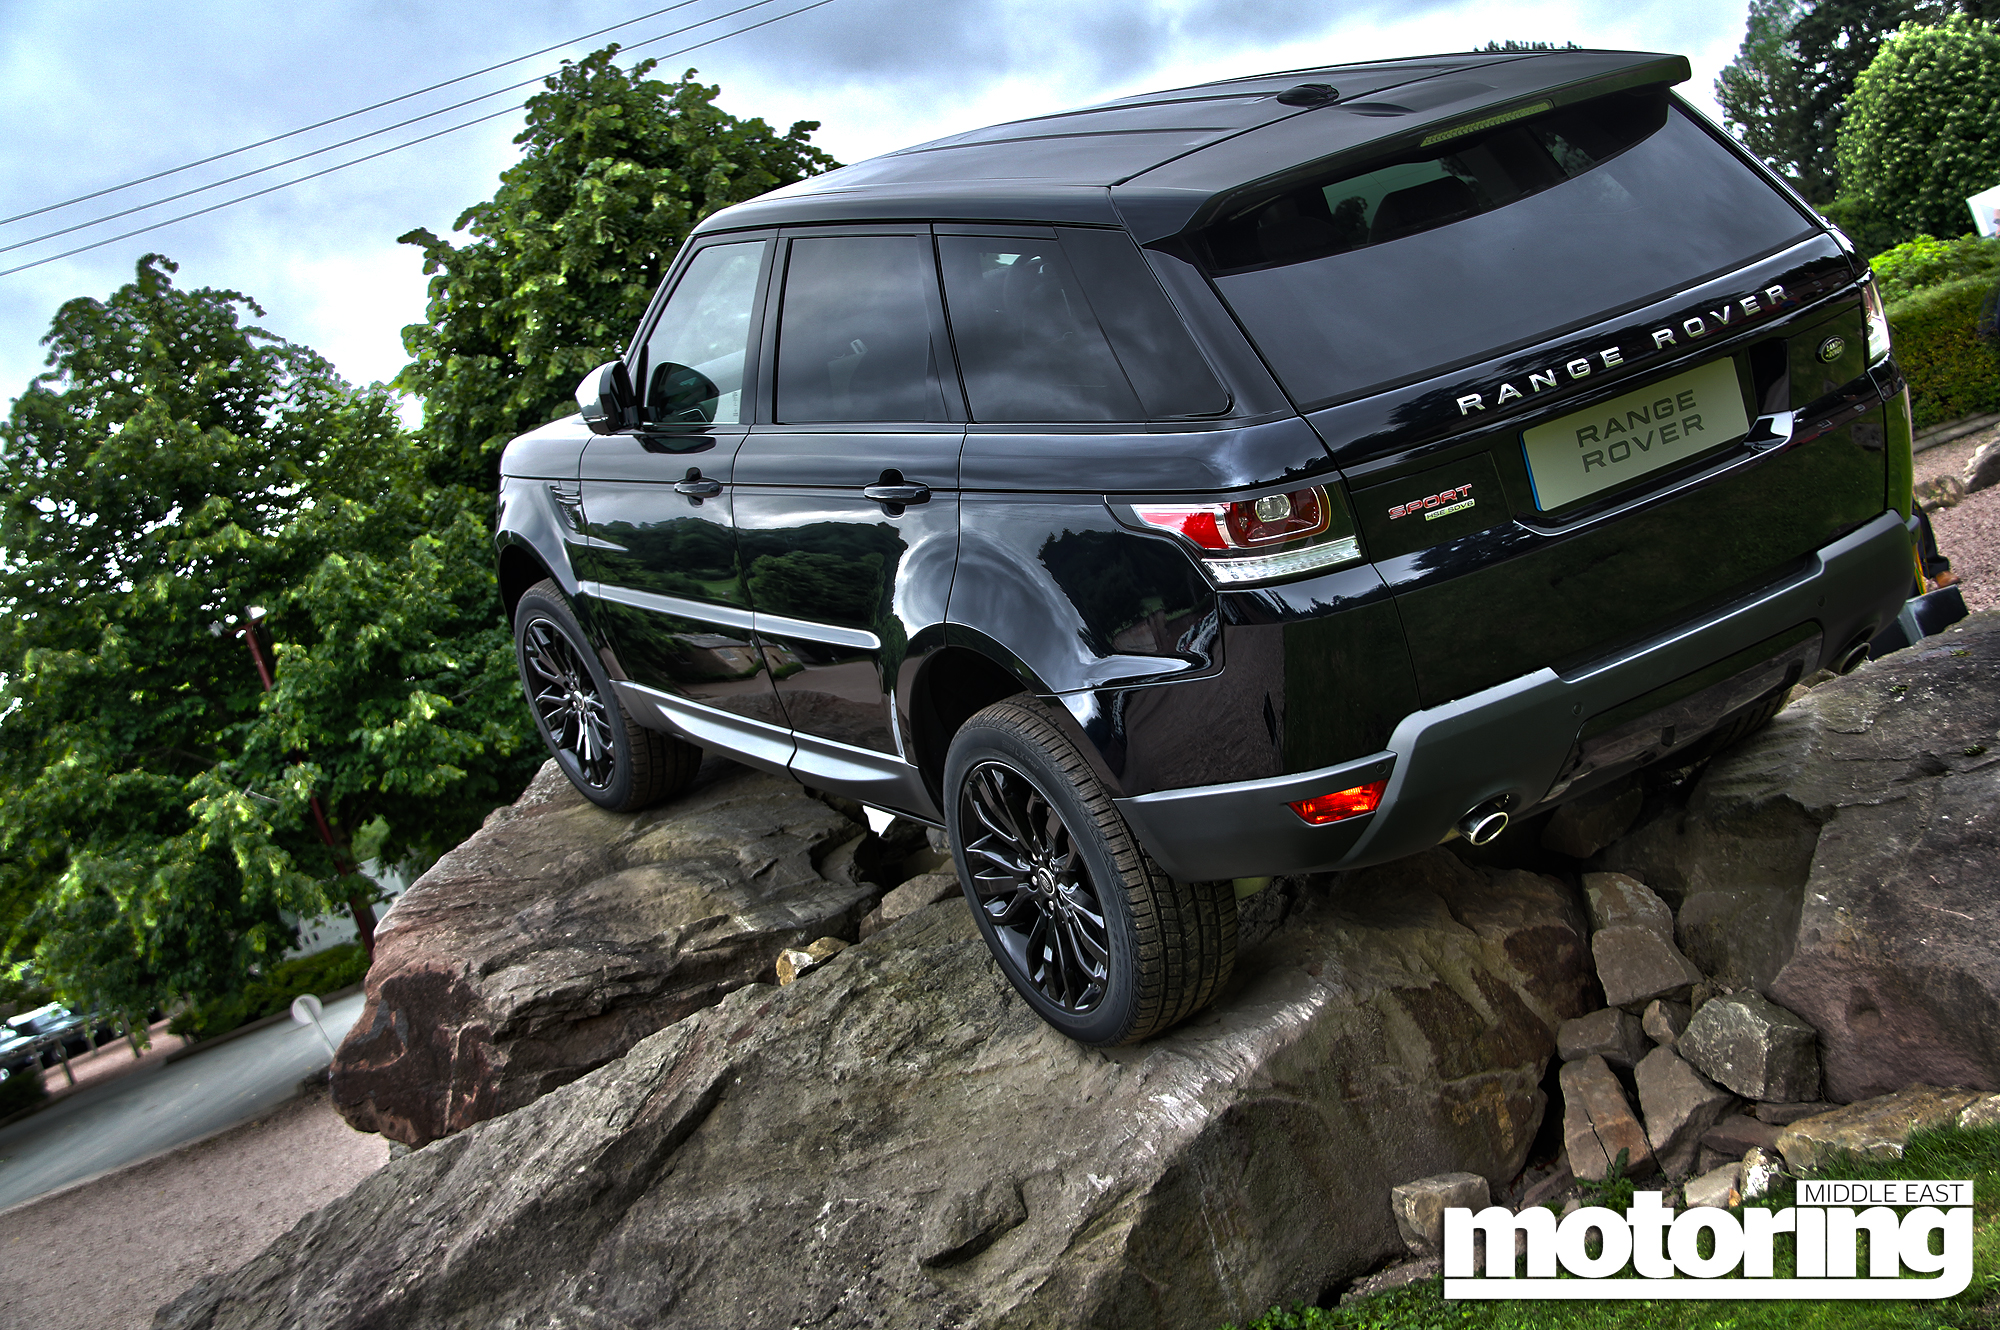 2014 Range Rover Sport Review Motoring Middle East Car news